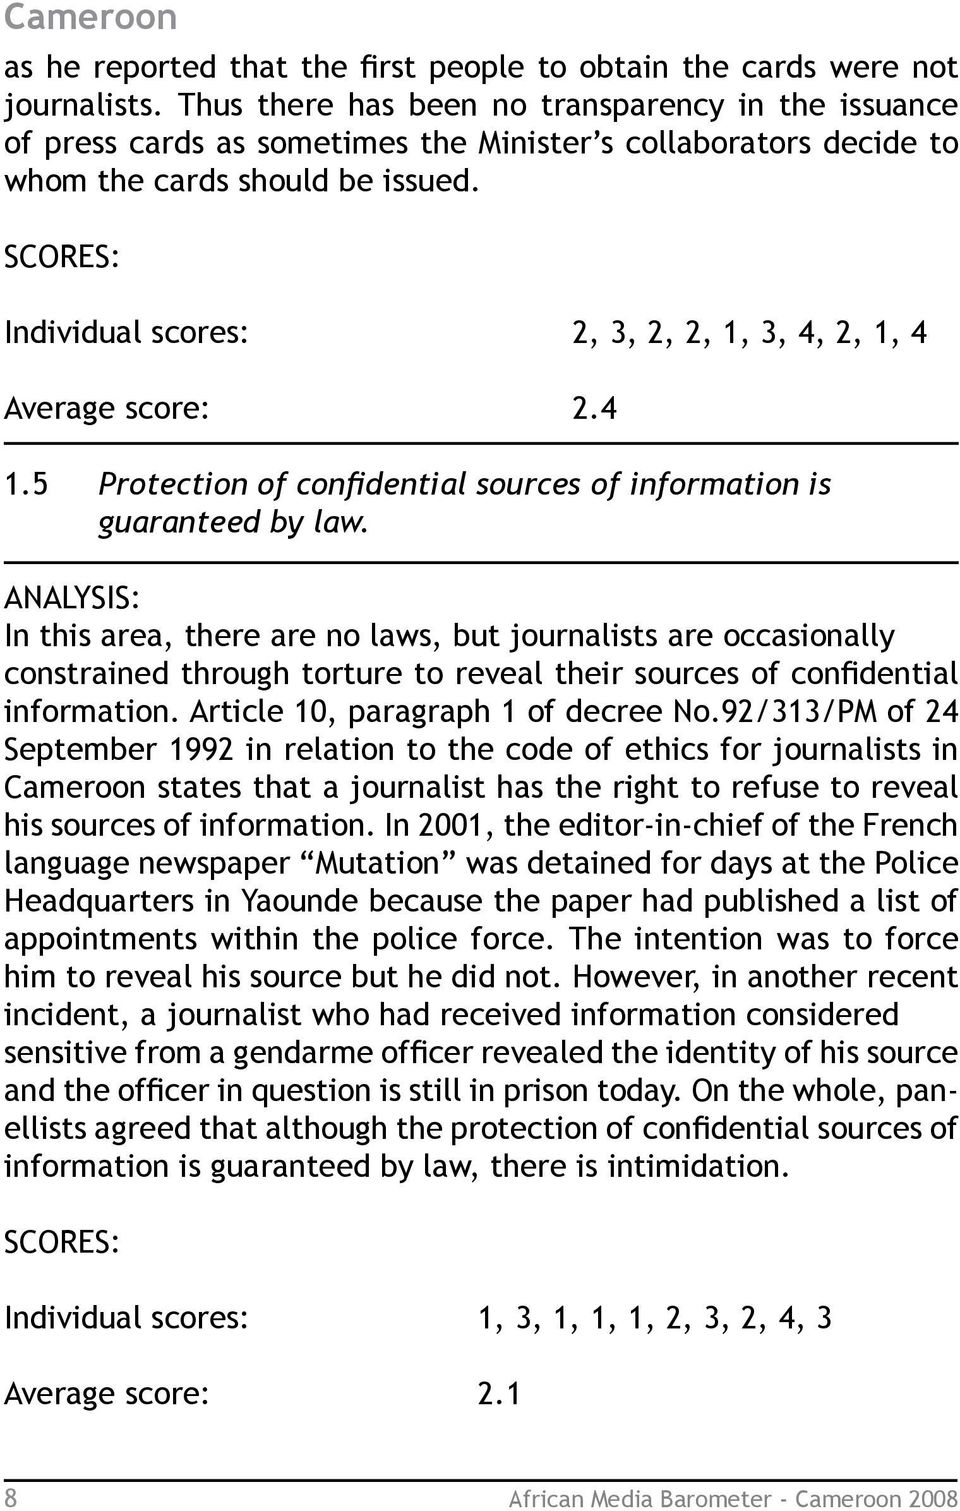 SCORES: Individual scores: 2, 3, 2, 2, 1, 3, 4, 2, 1, 4 Average score: 2.4 1.5 Protection of confidential sources of information is guaranteed by law.